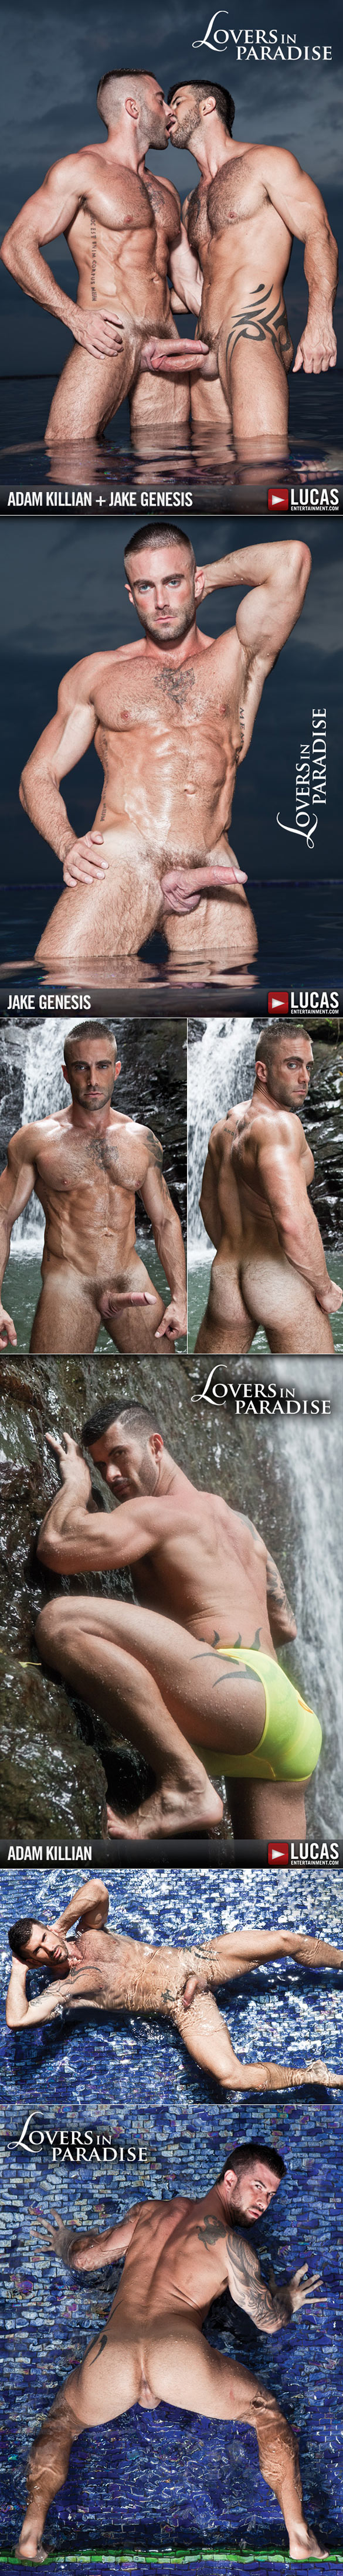 "Lucas Entertainment: Adam Killian fucks Jake Genesis in ""Lovers in Paradise"""